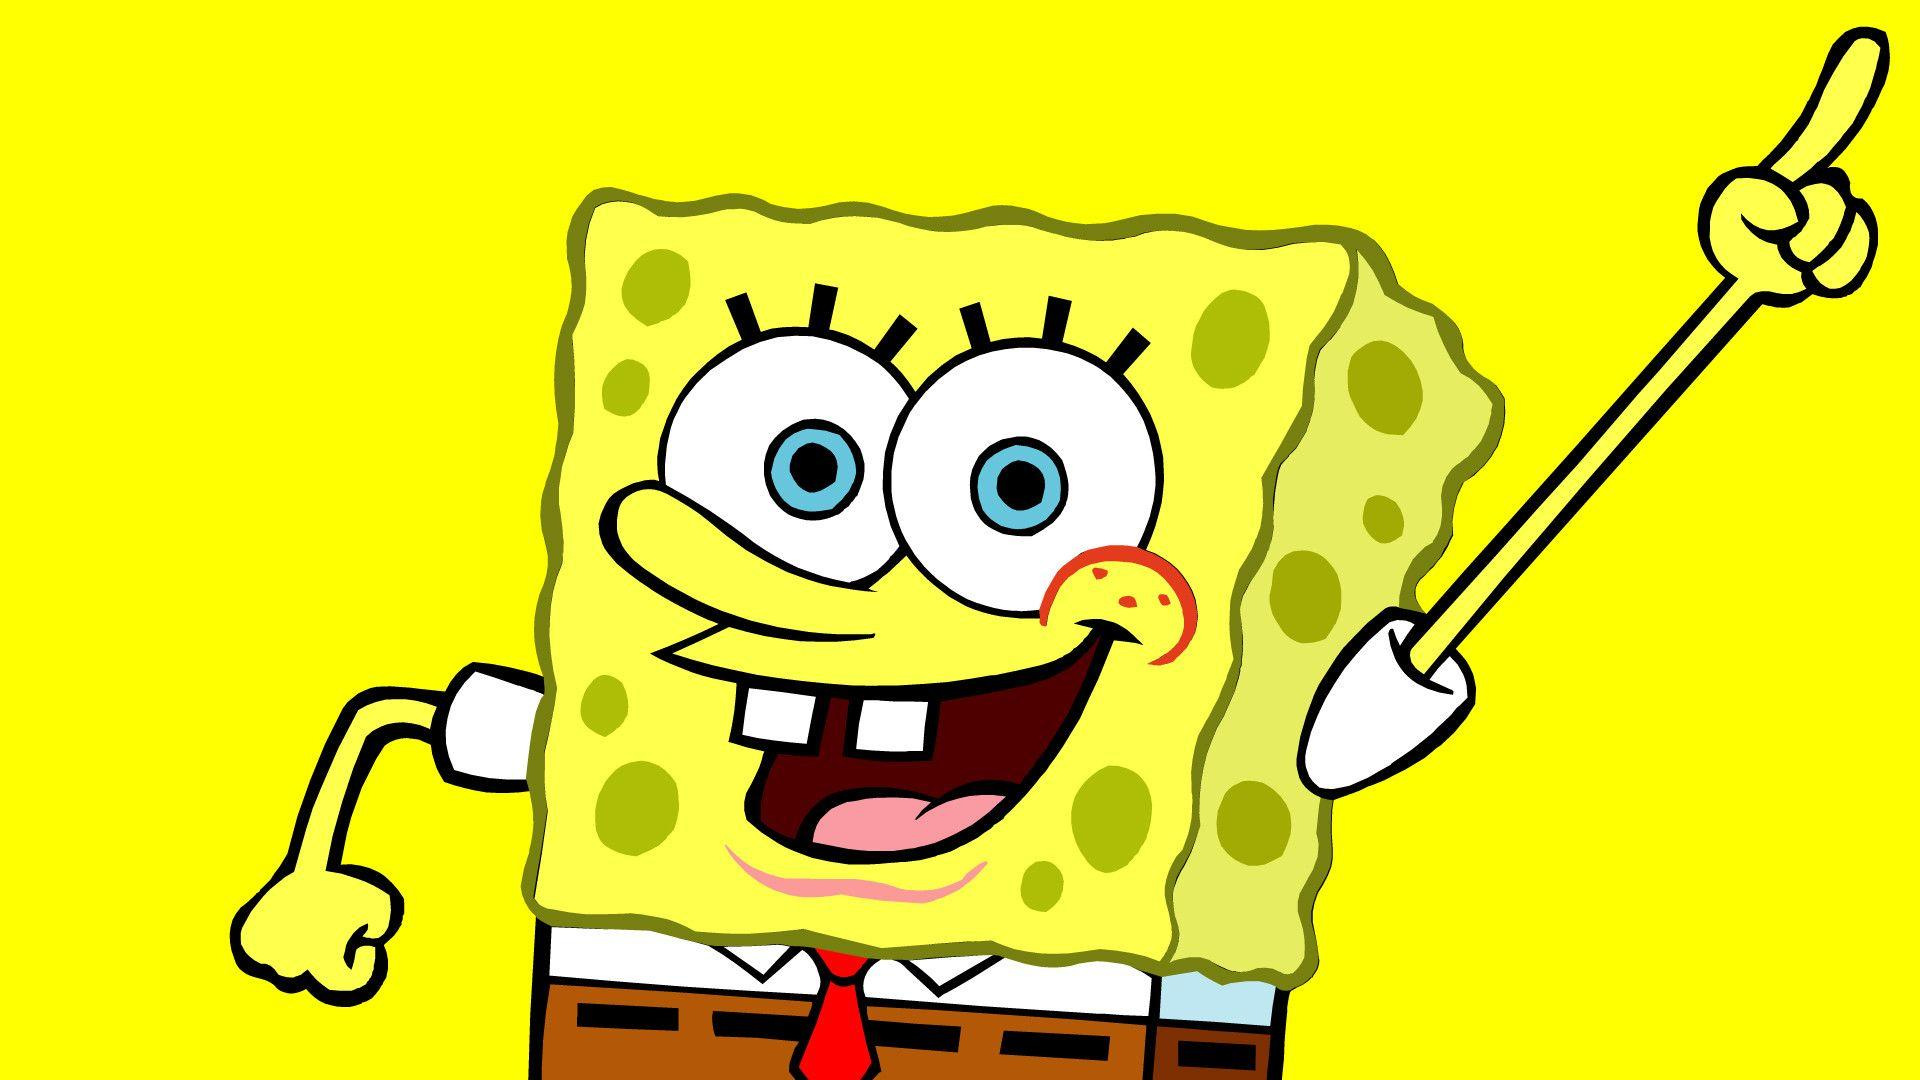 Spongebob Wallpaper Background | Download High Quality Resolution ...